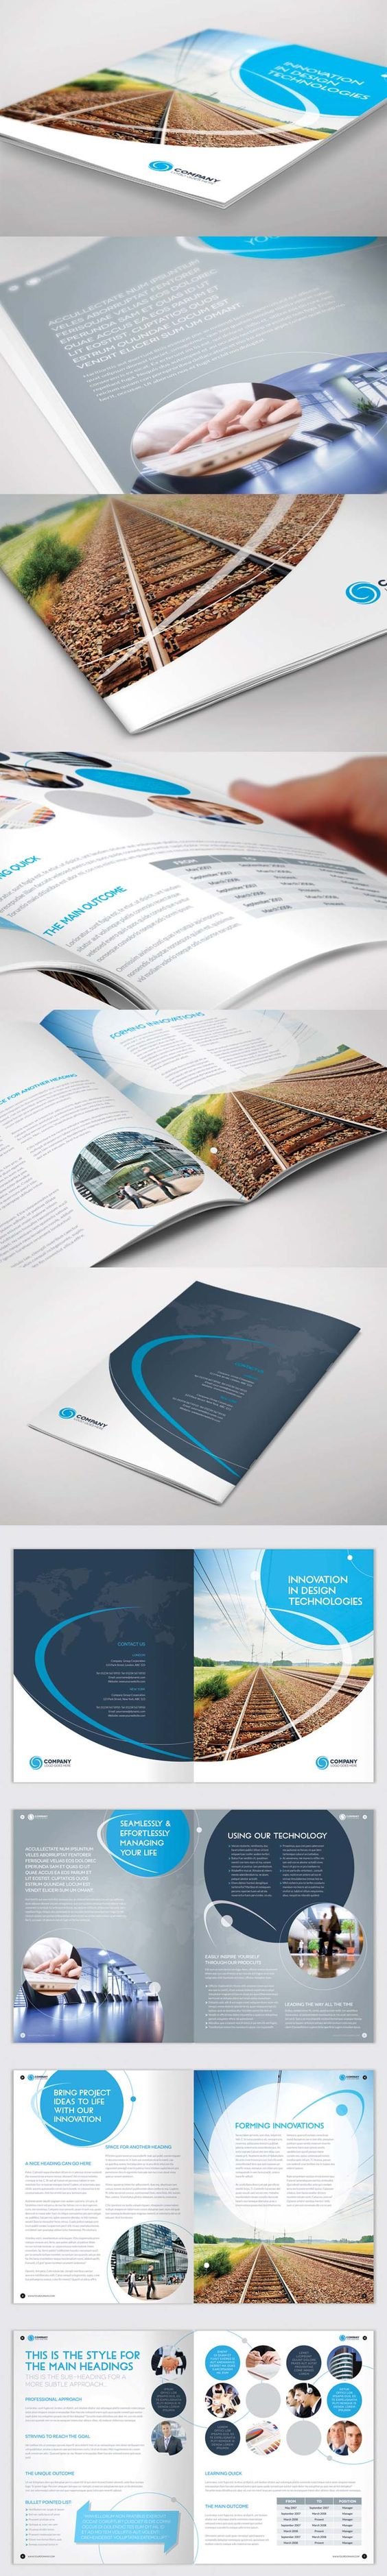 Brochure Template – InDesign 8 Page Layout | brochures | Pinterest ...